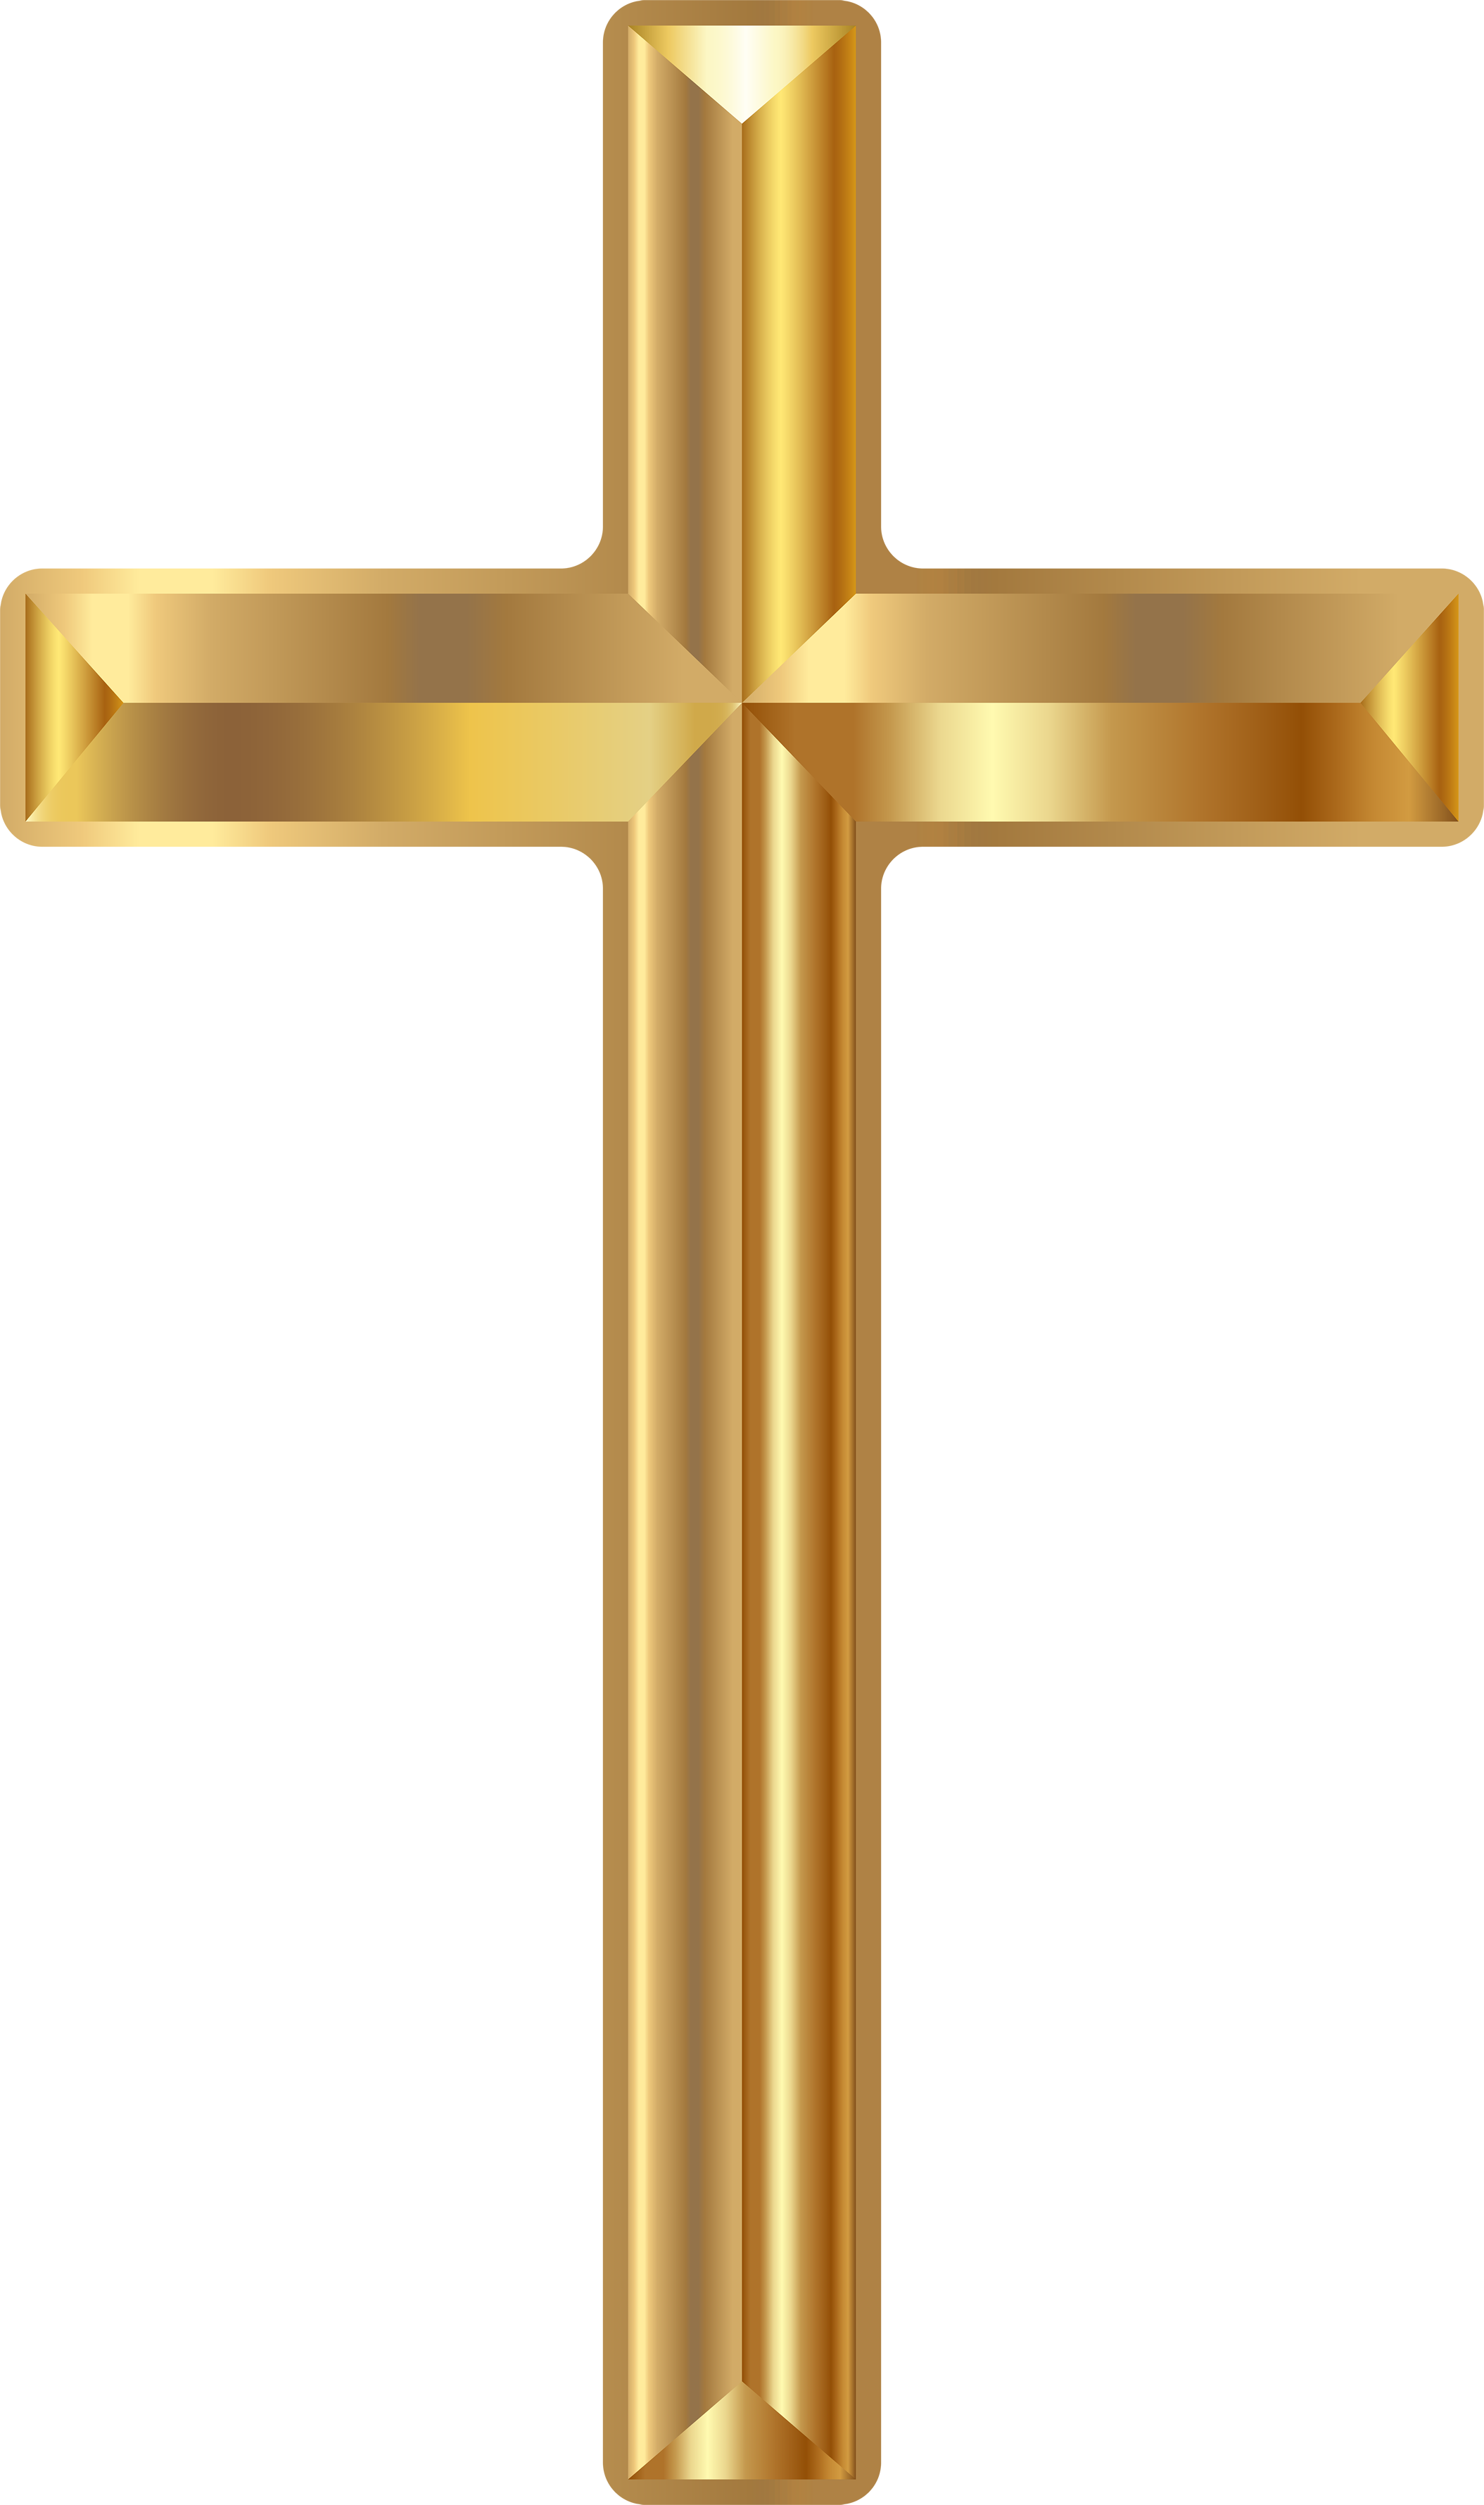 Christian Cross PNG Images Transparent Free Download | PNGMart.com